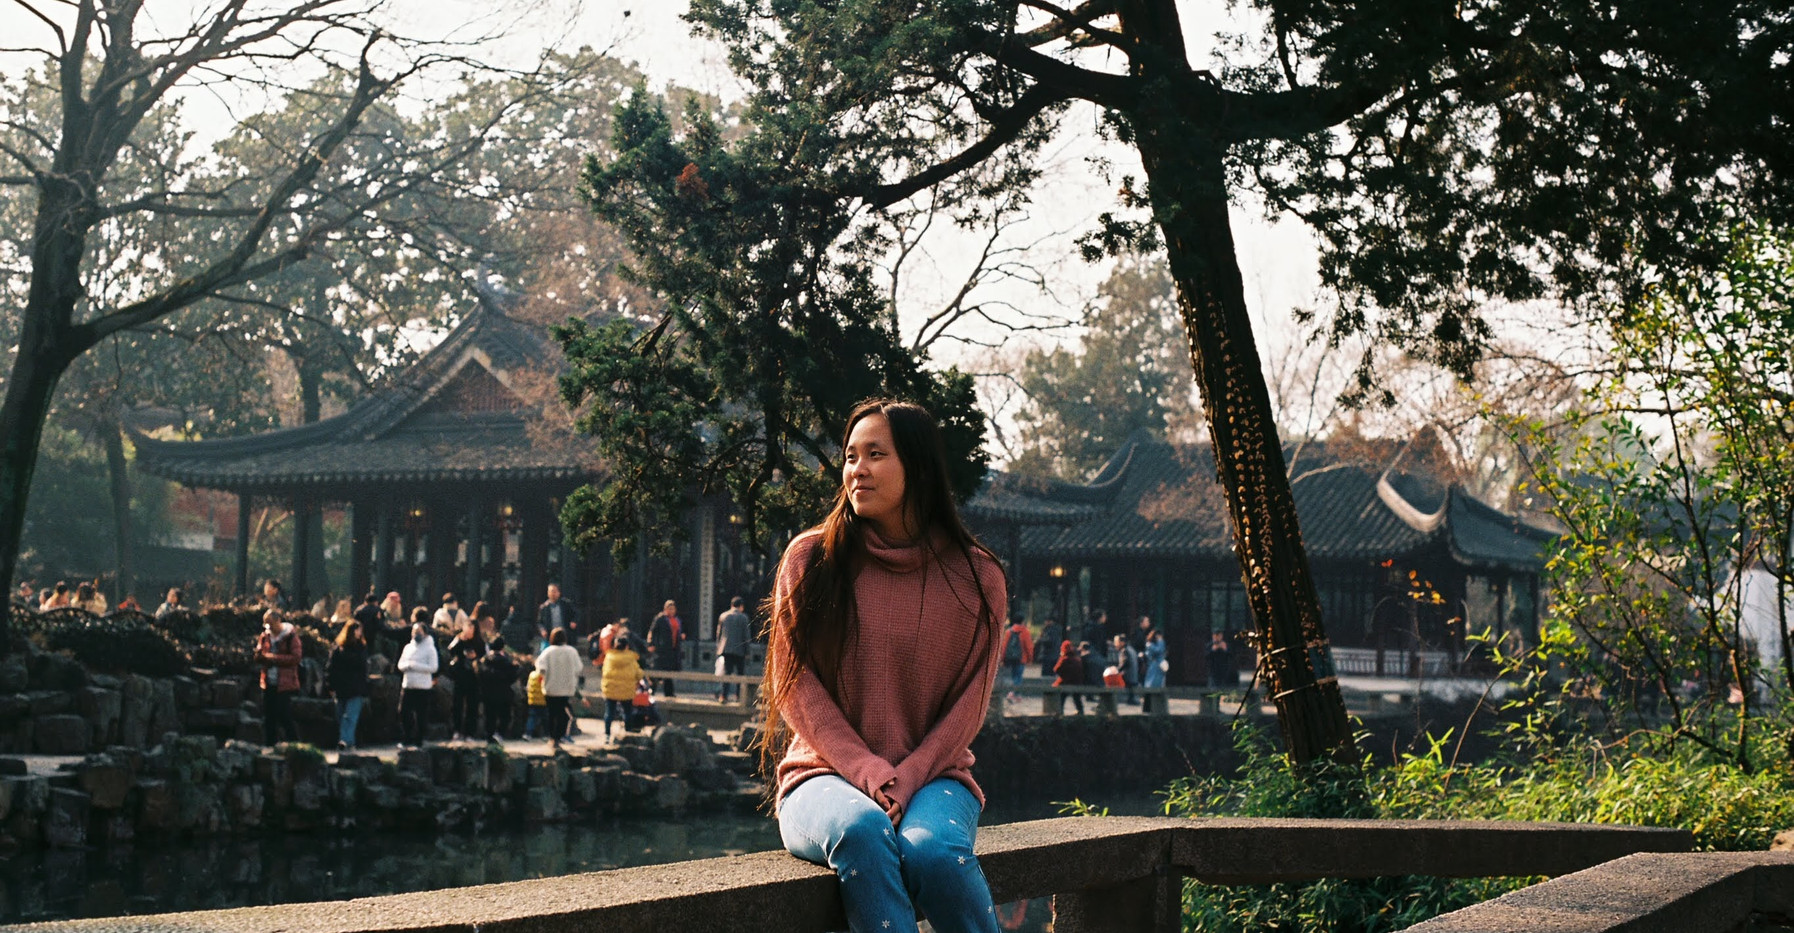 vic in the humble administrator's garden, china - dec 2019